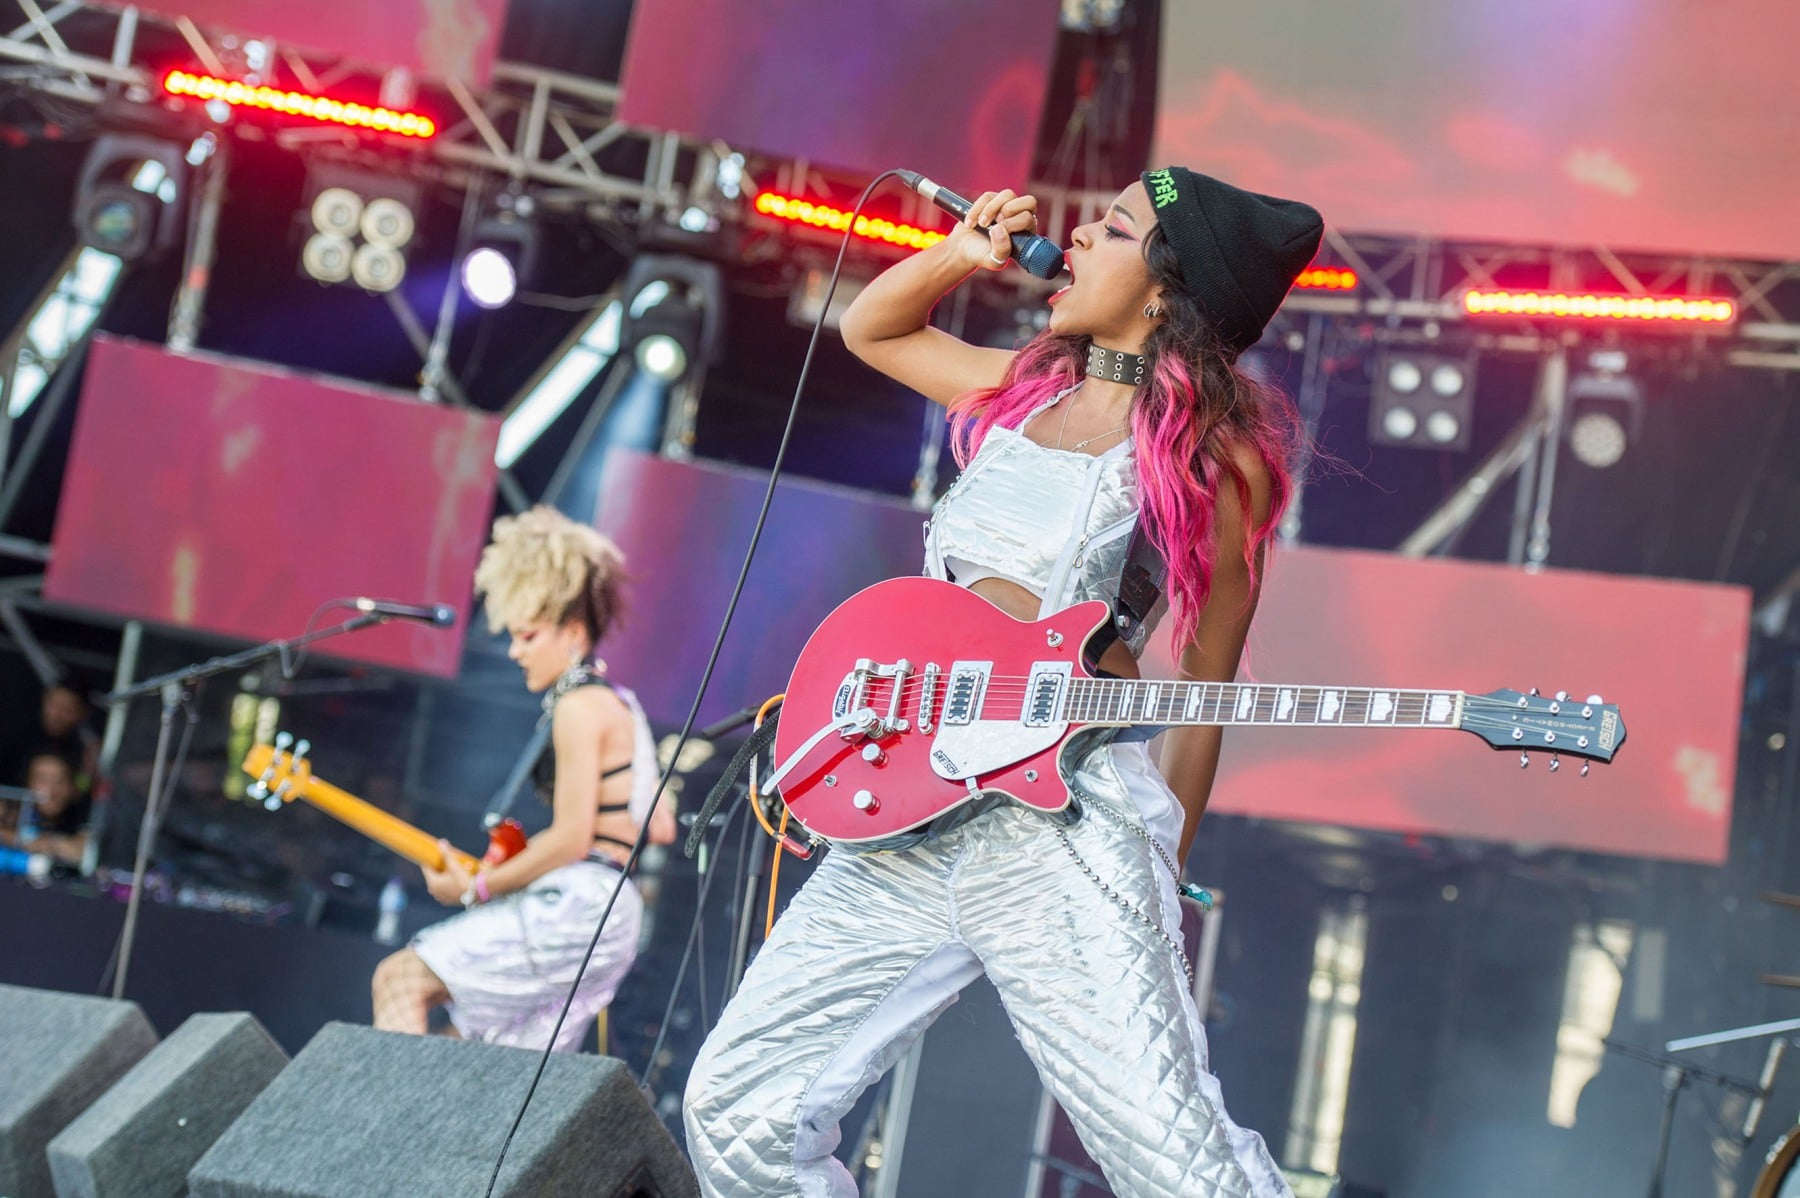 nova-twins-at-mtv-presents-gibraltar-calling-2018-day-2-by-ollie-millington-15_44833877012_o